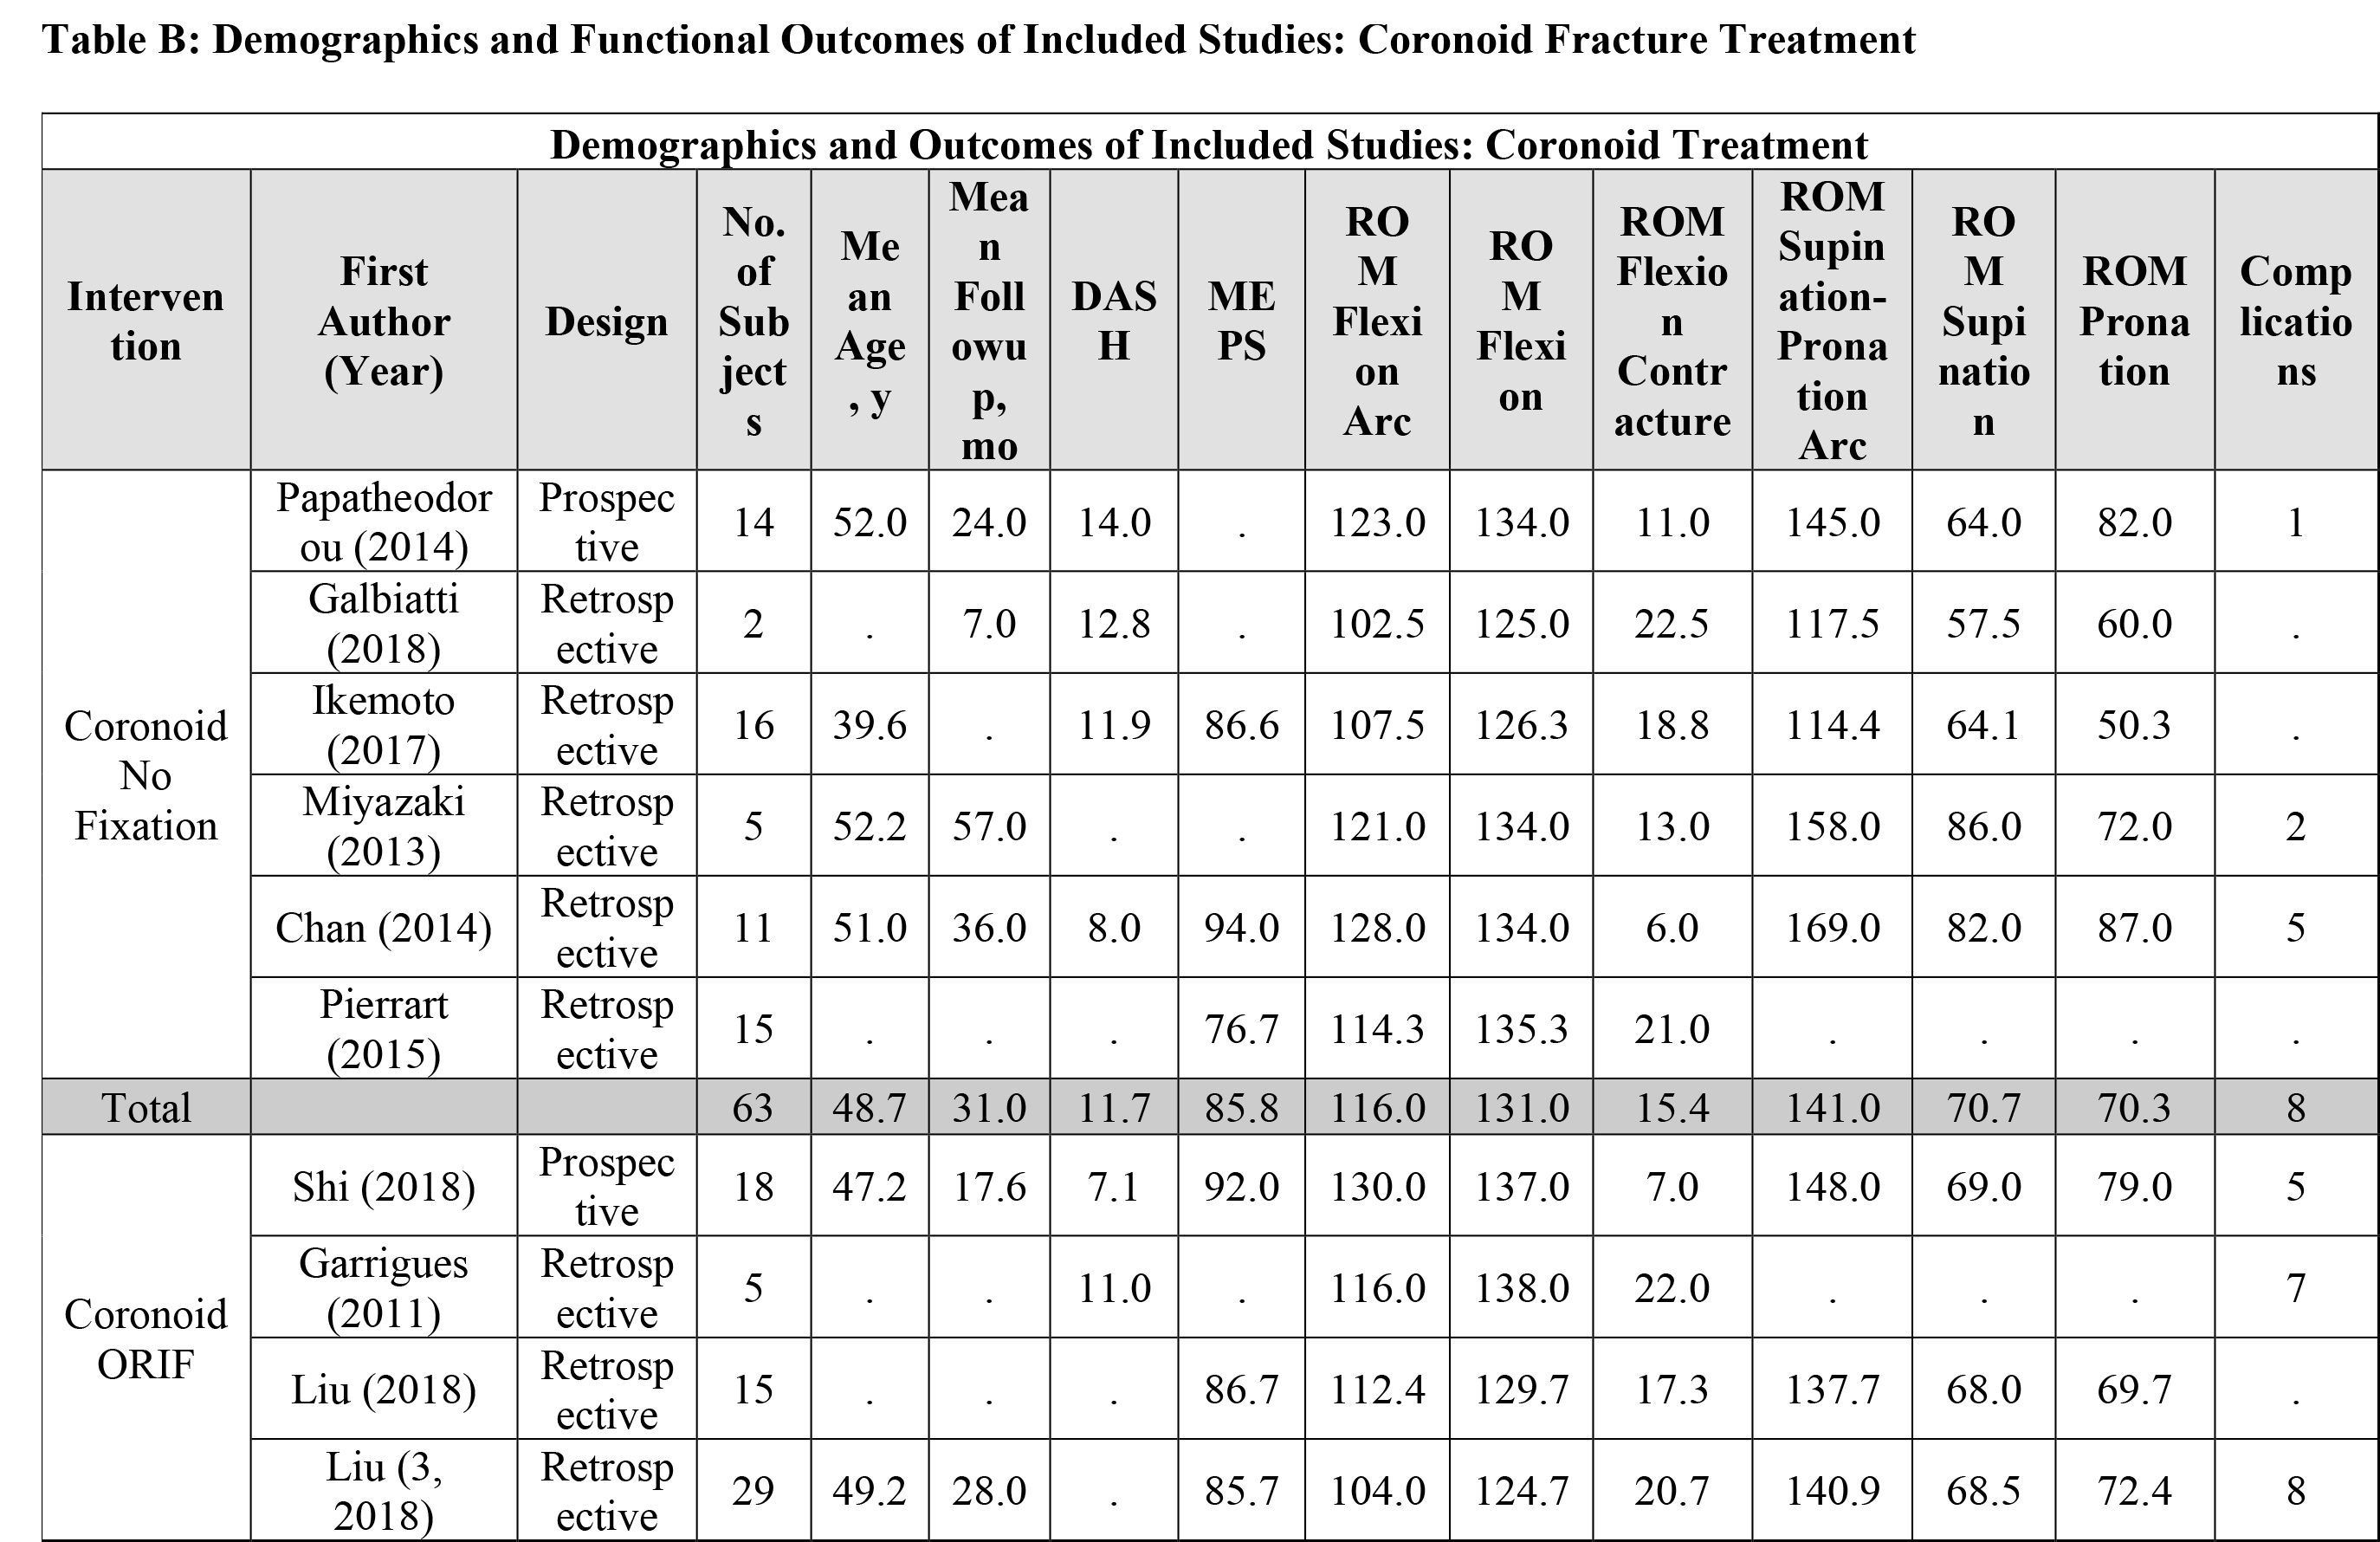 Demographics and Functional Outcomes of Included Studies: Coronoid Fracture Treatment